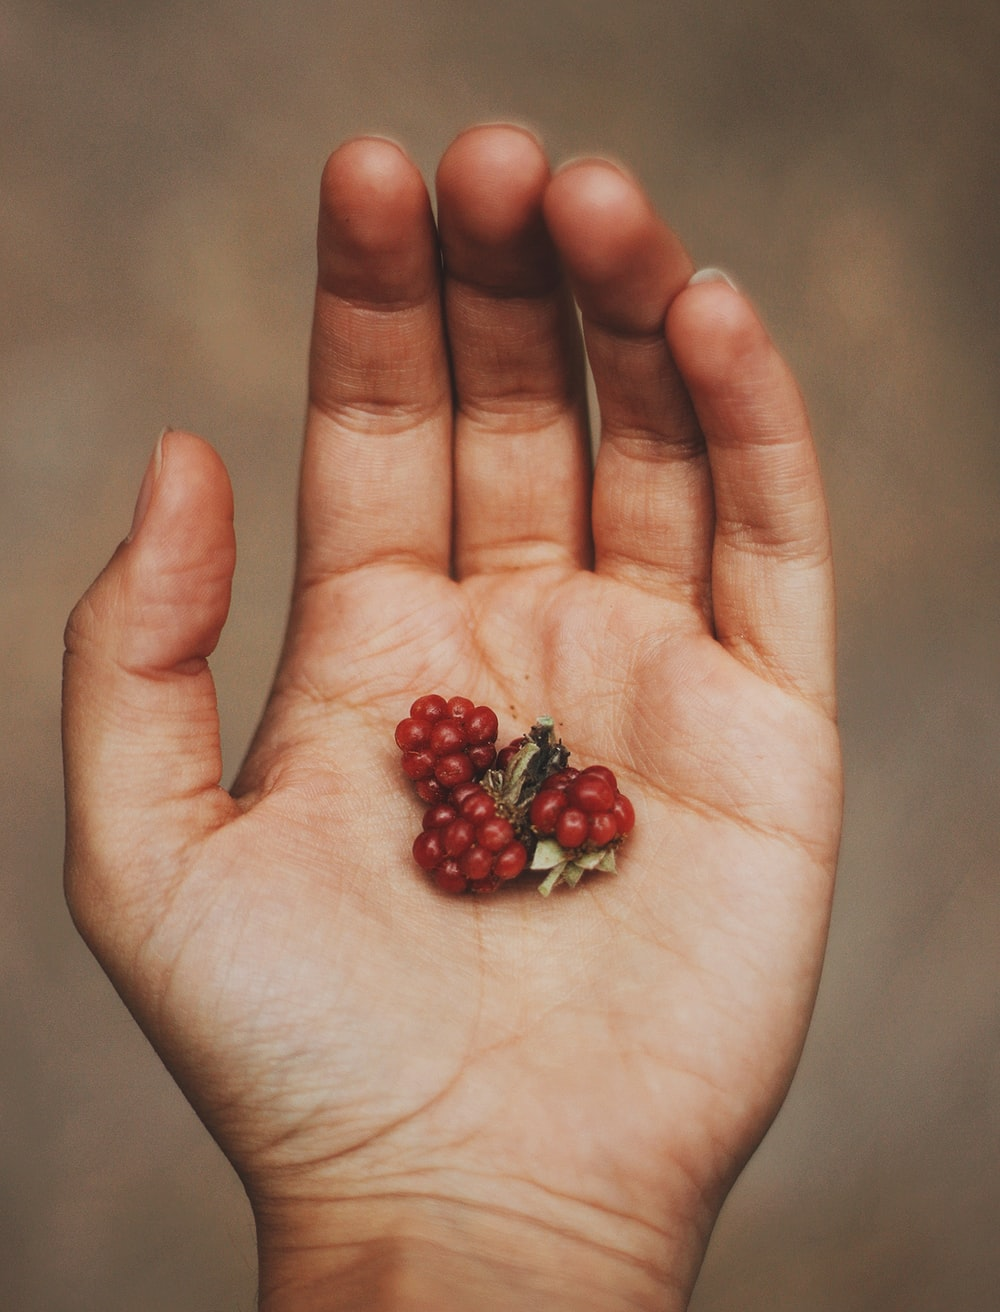 red round fruits on persons palm